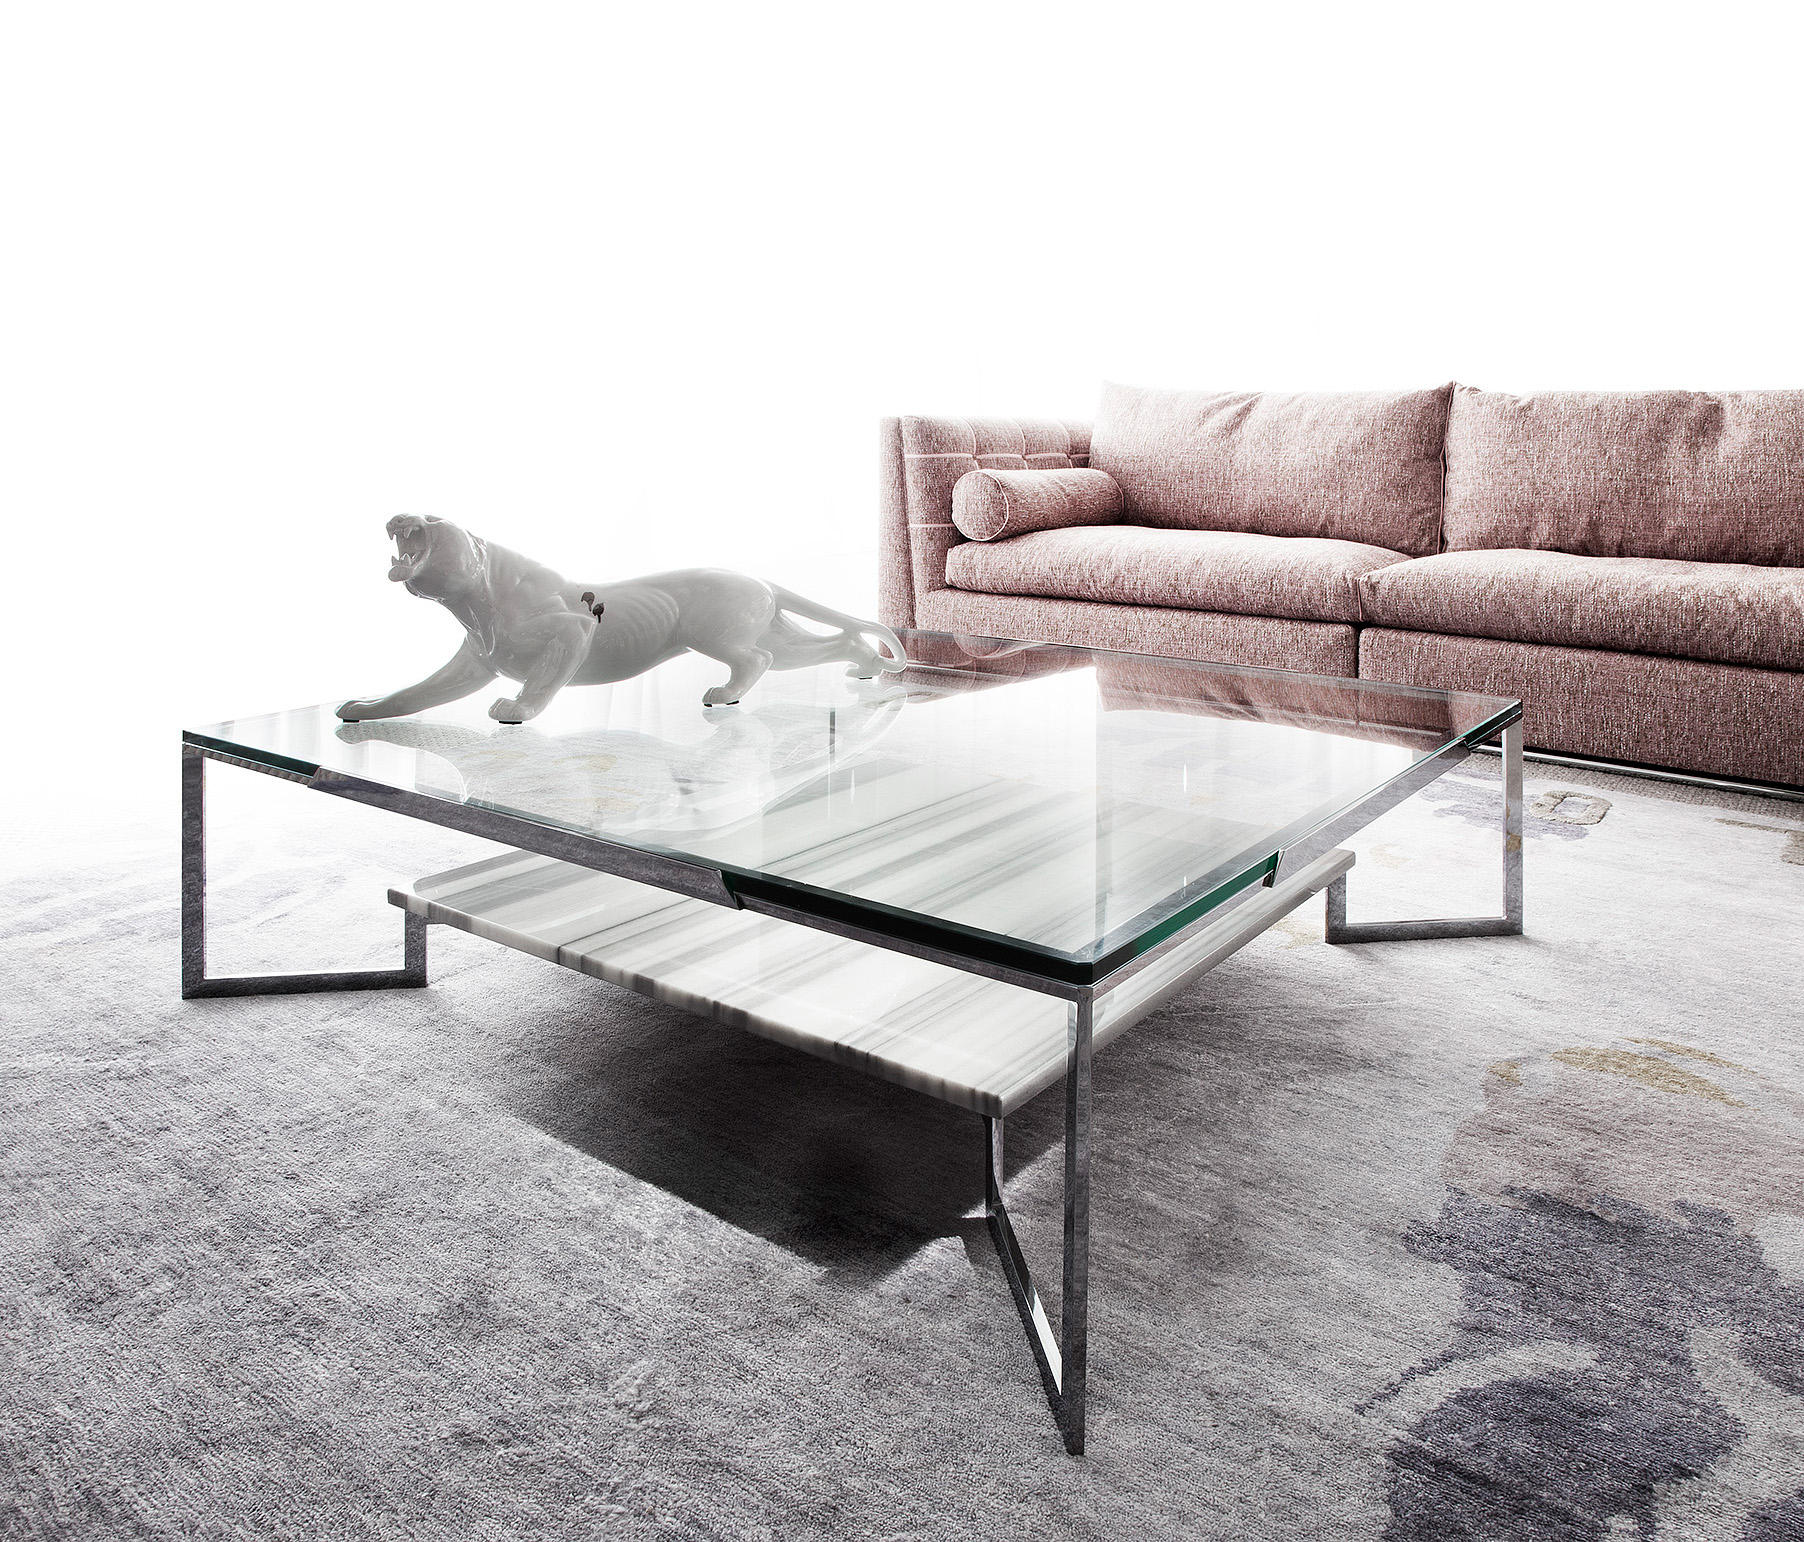 COFFEE TABLES High quality designer COFFEE TABLES